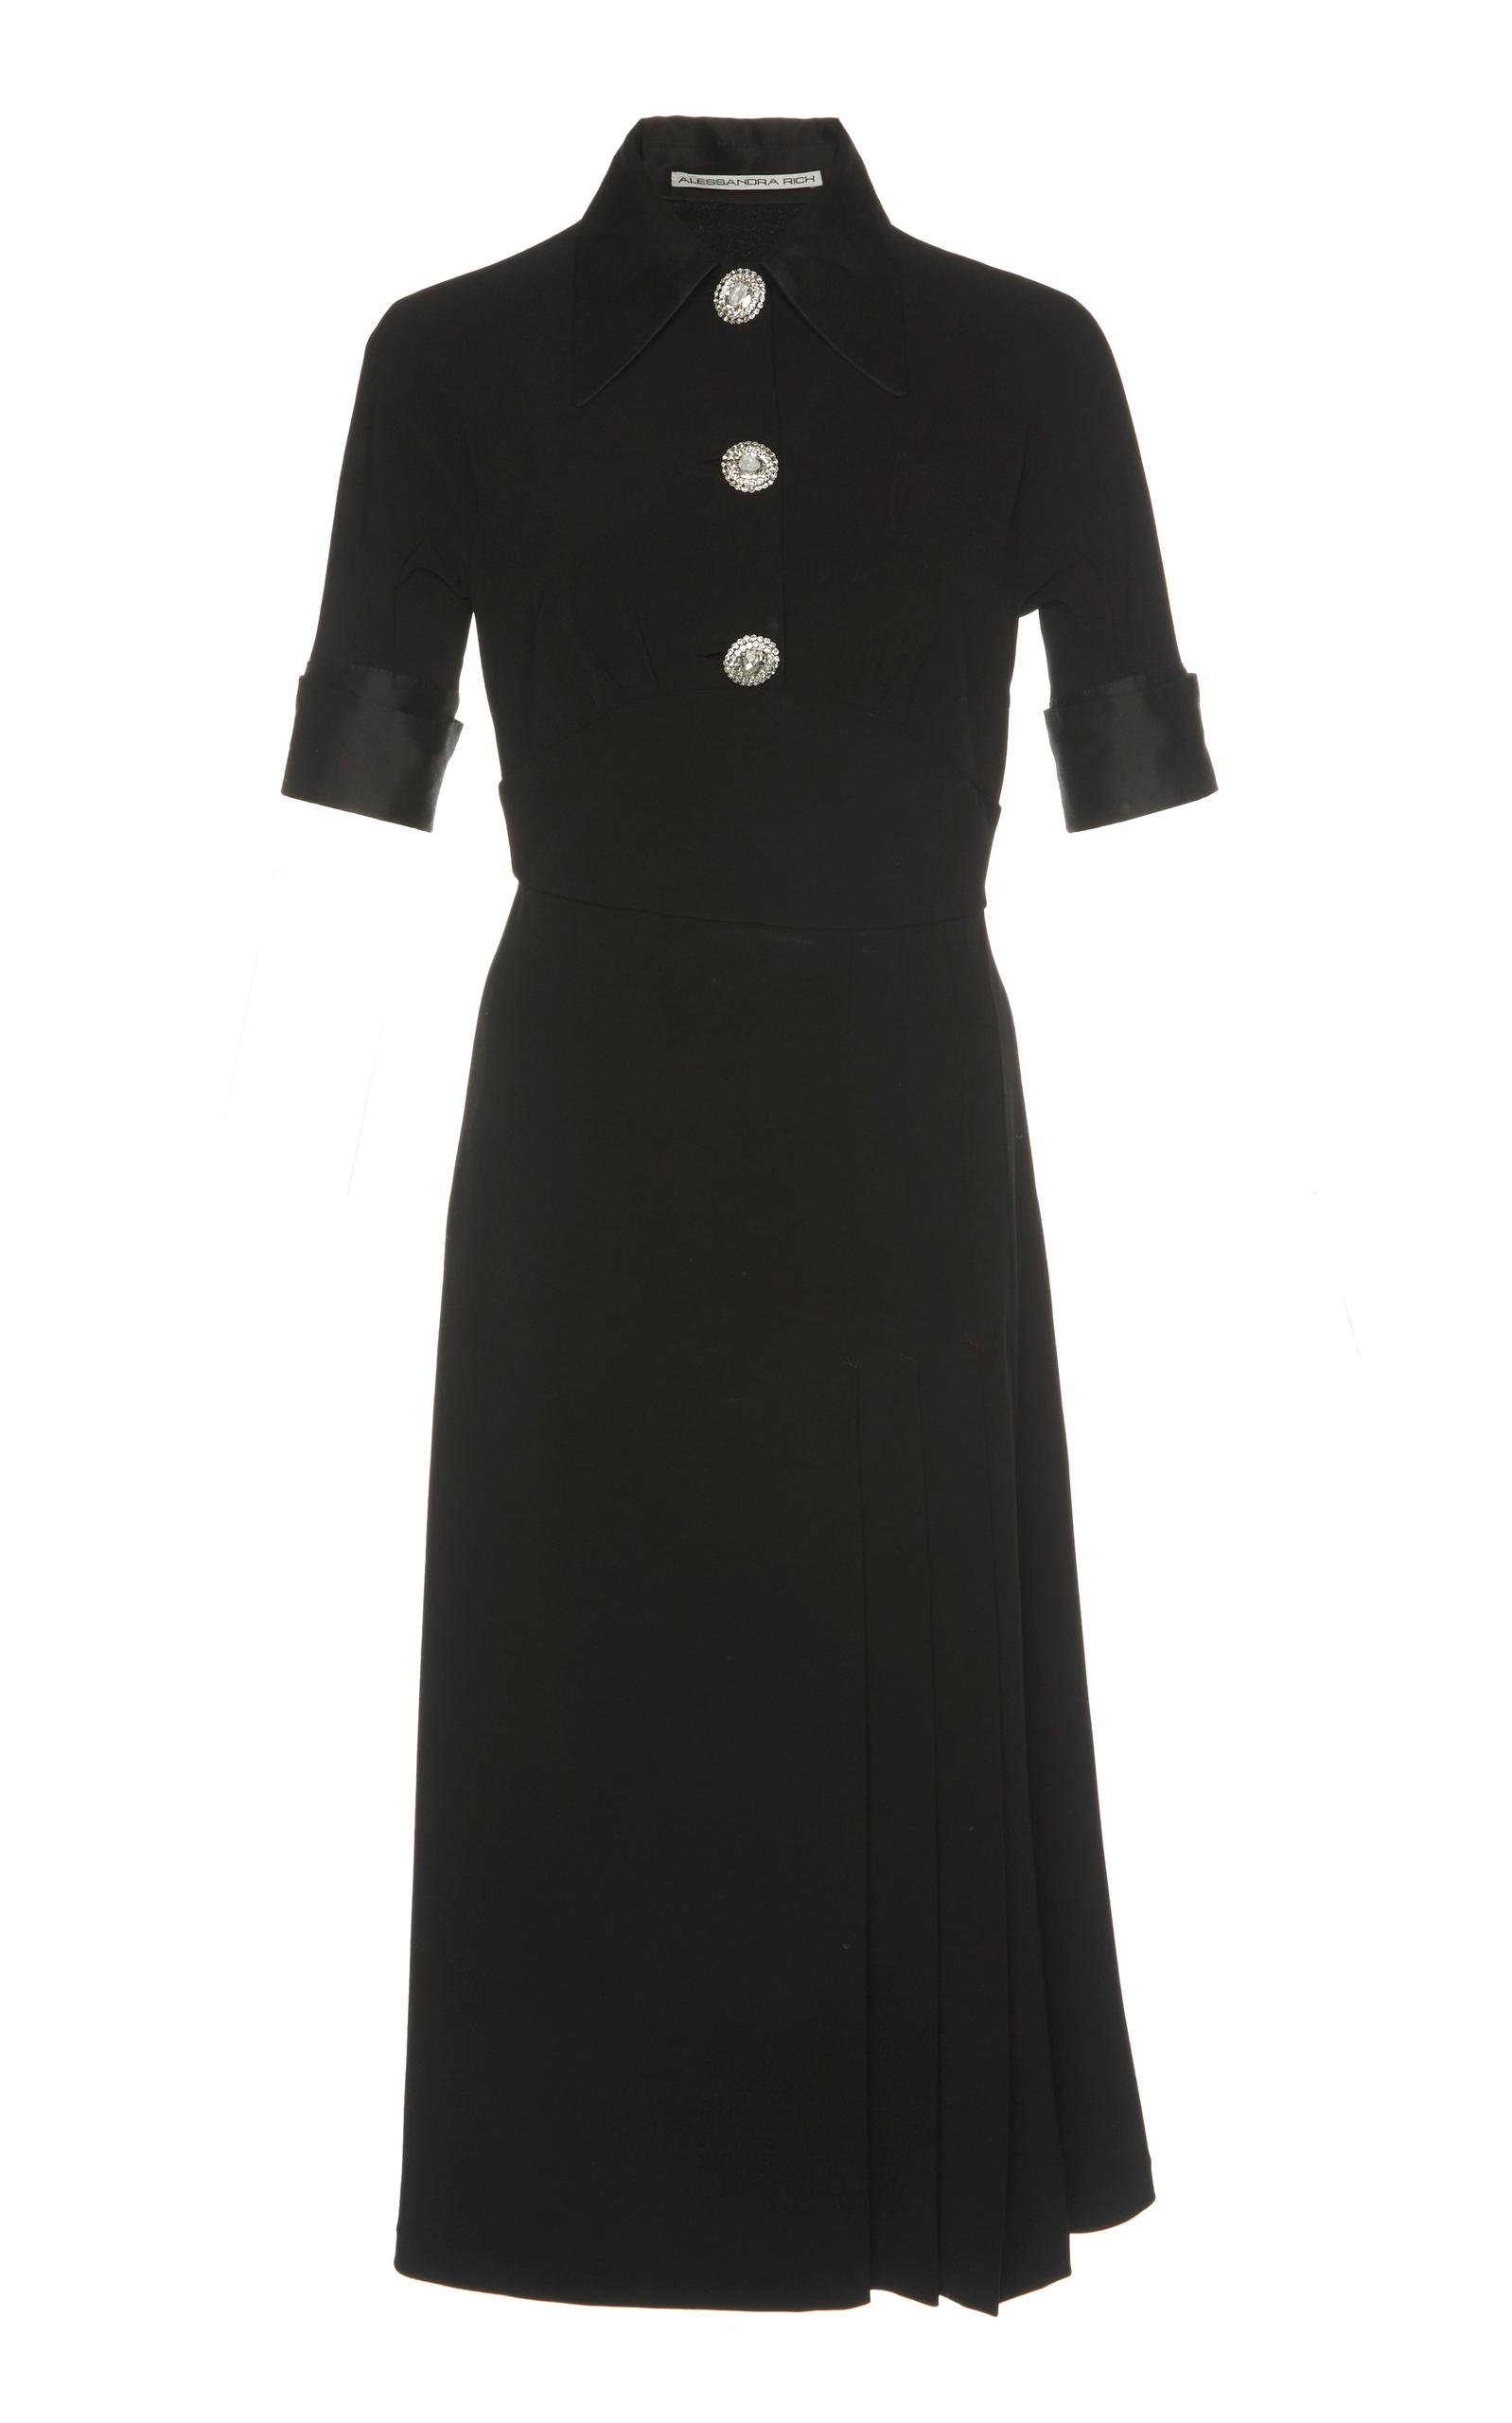 Alessandra Rich Knee Length SablÉ Dress With Crystal Buttons In Black